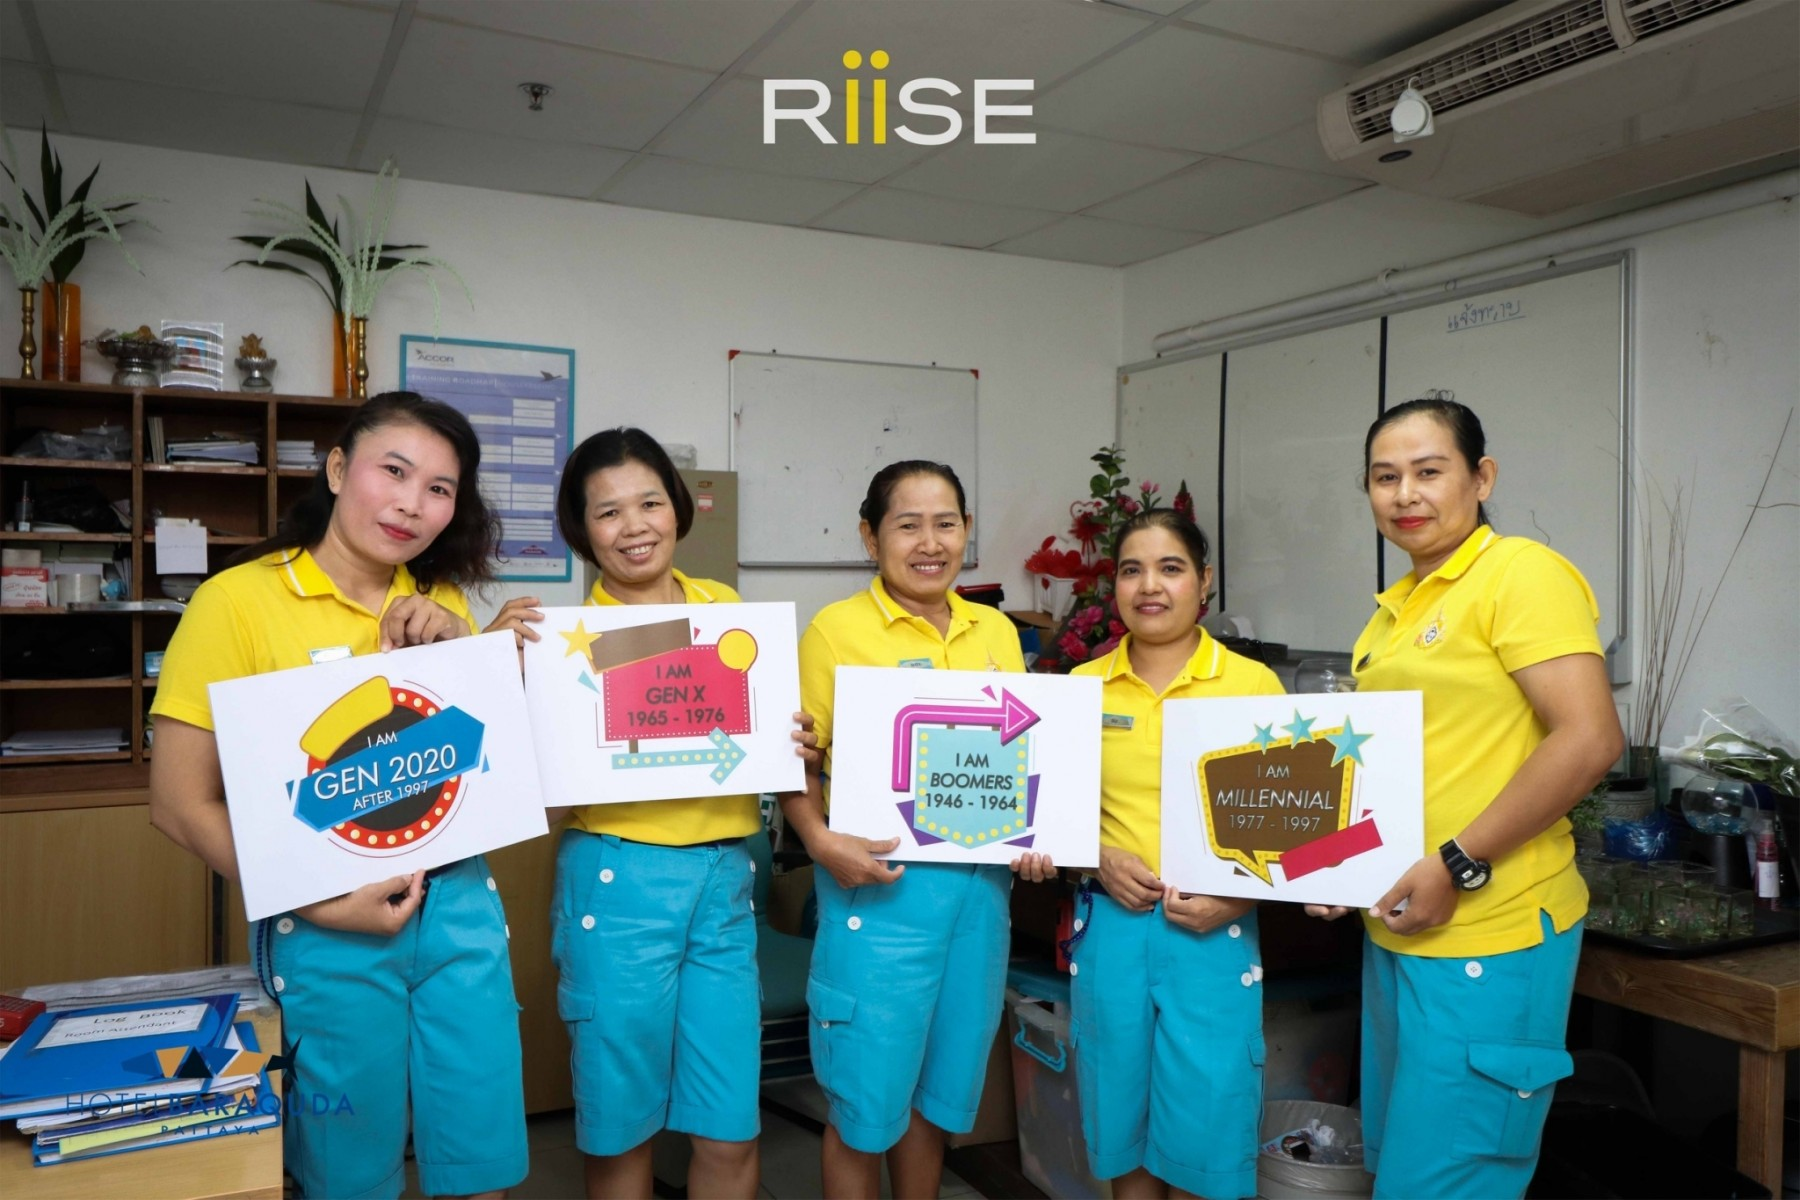 diversity-inclusion-riise-2019